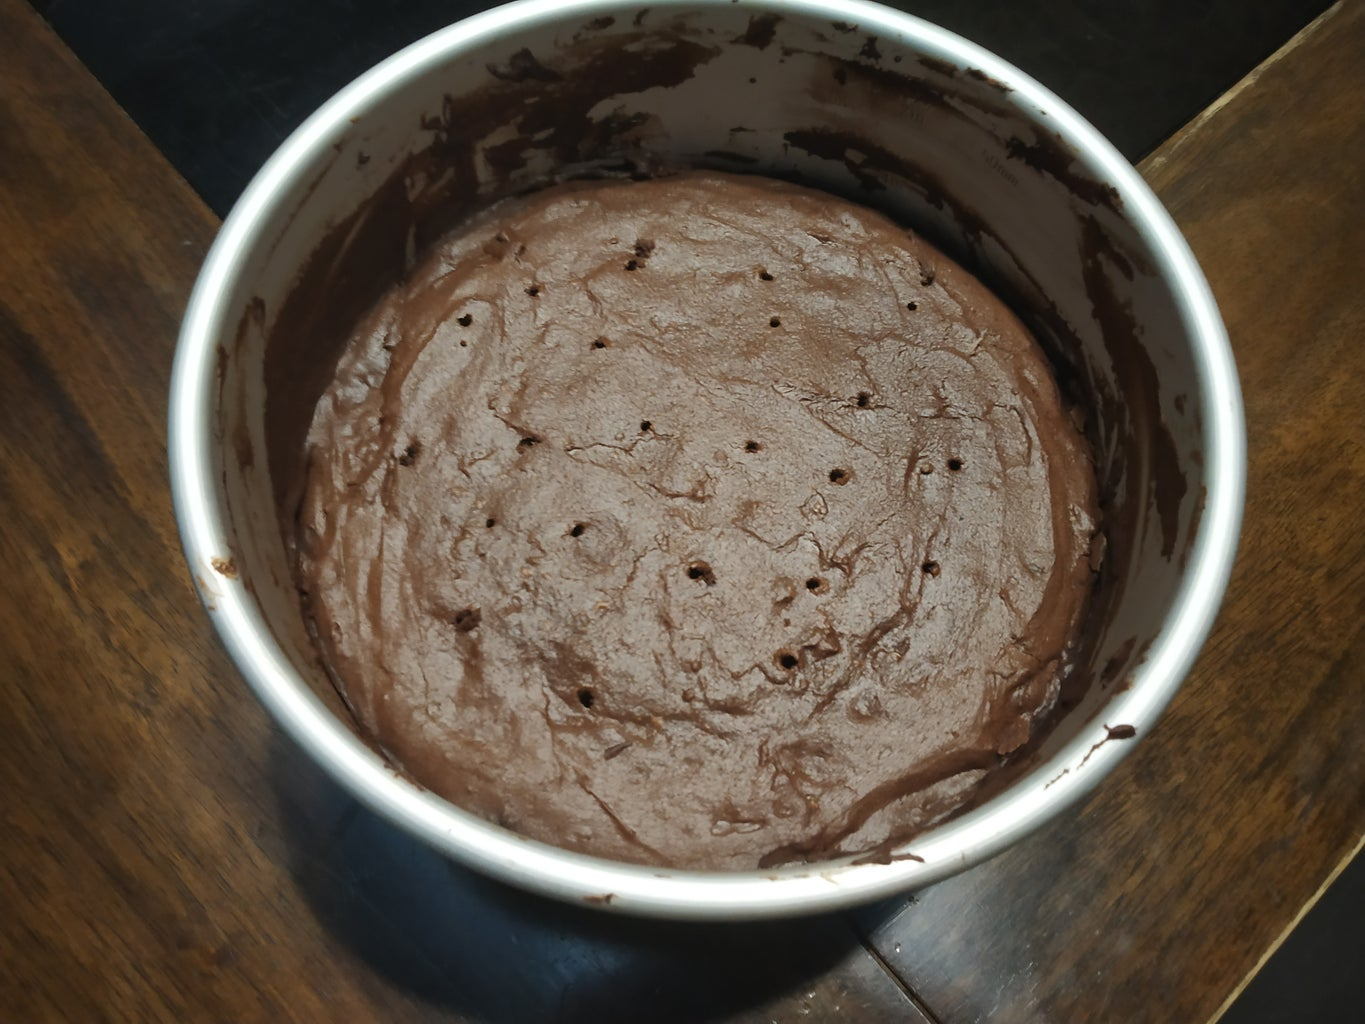 Cutting the Brownies